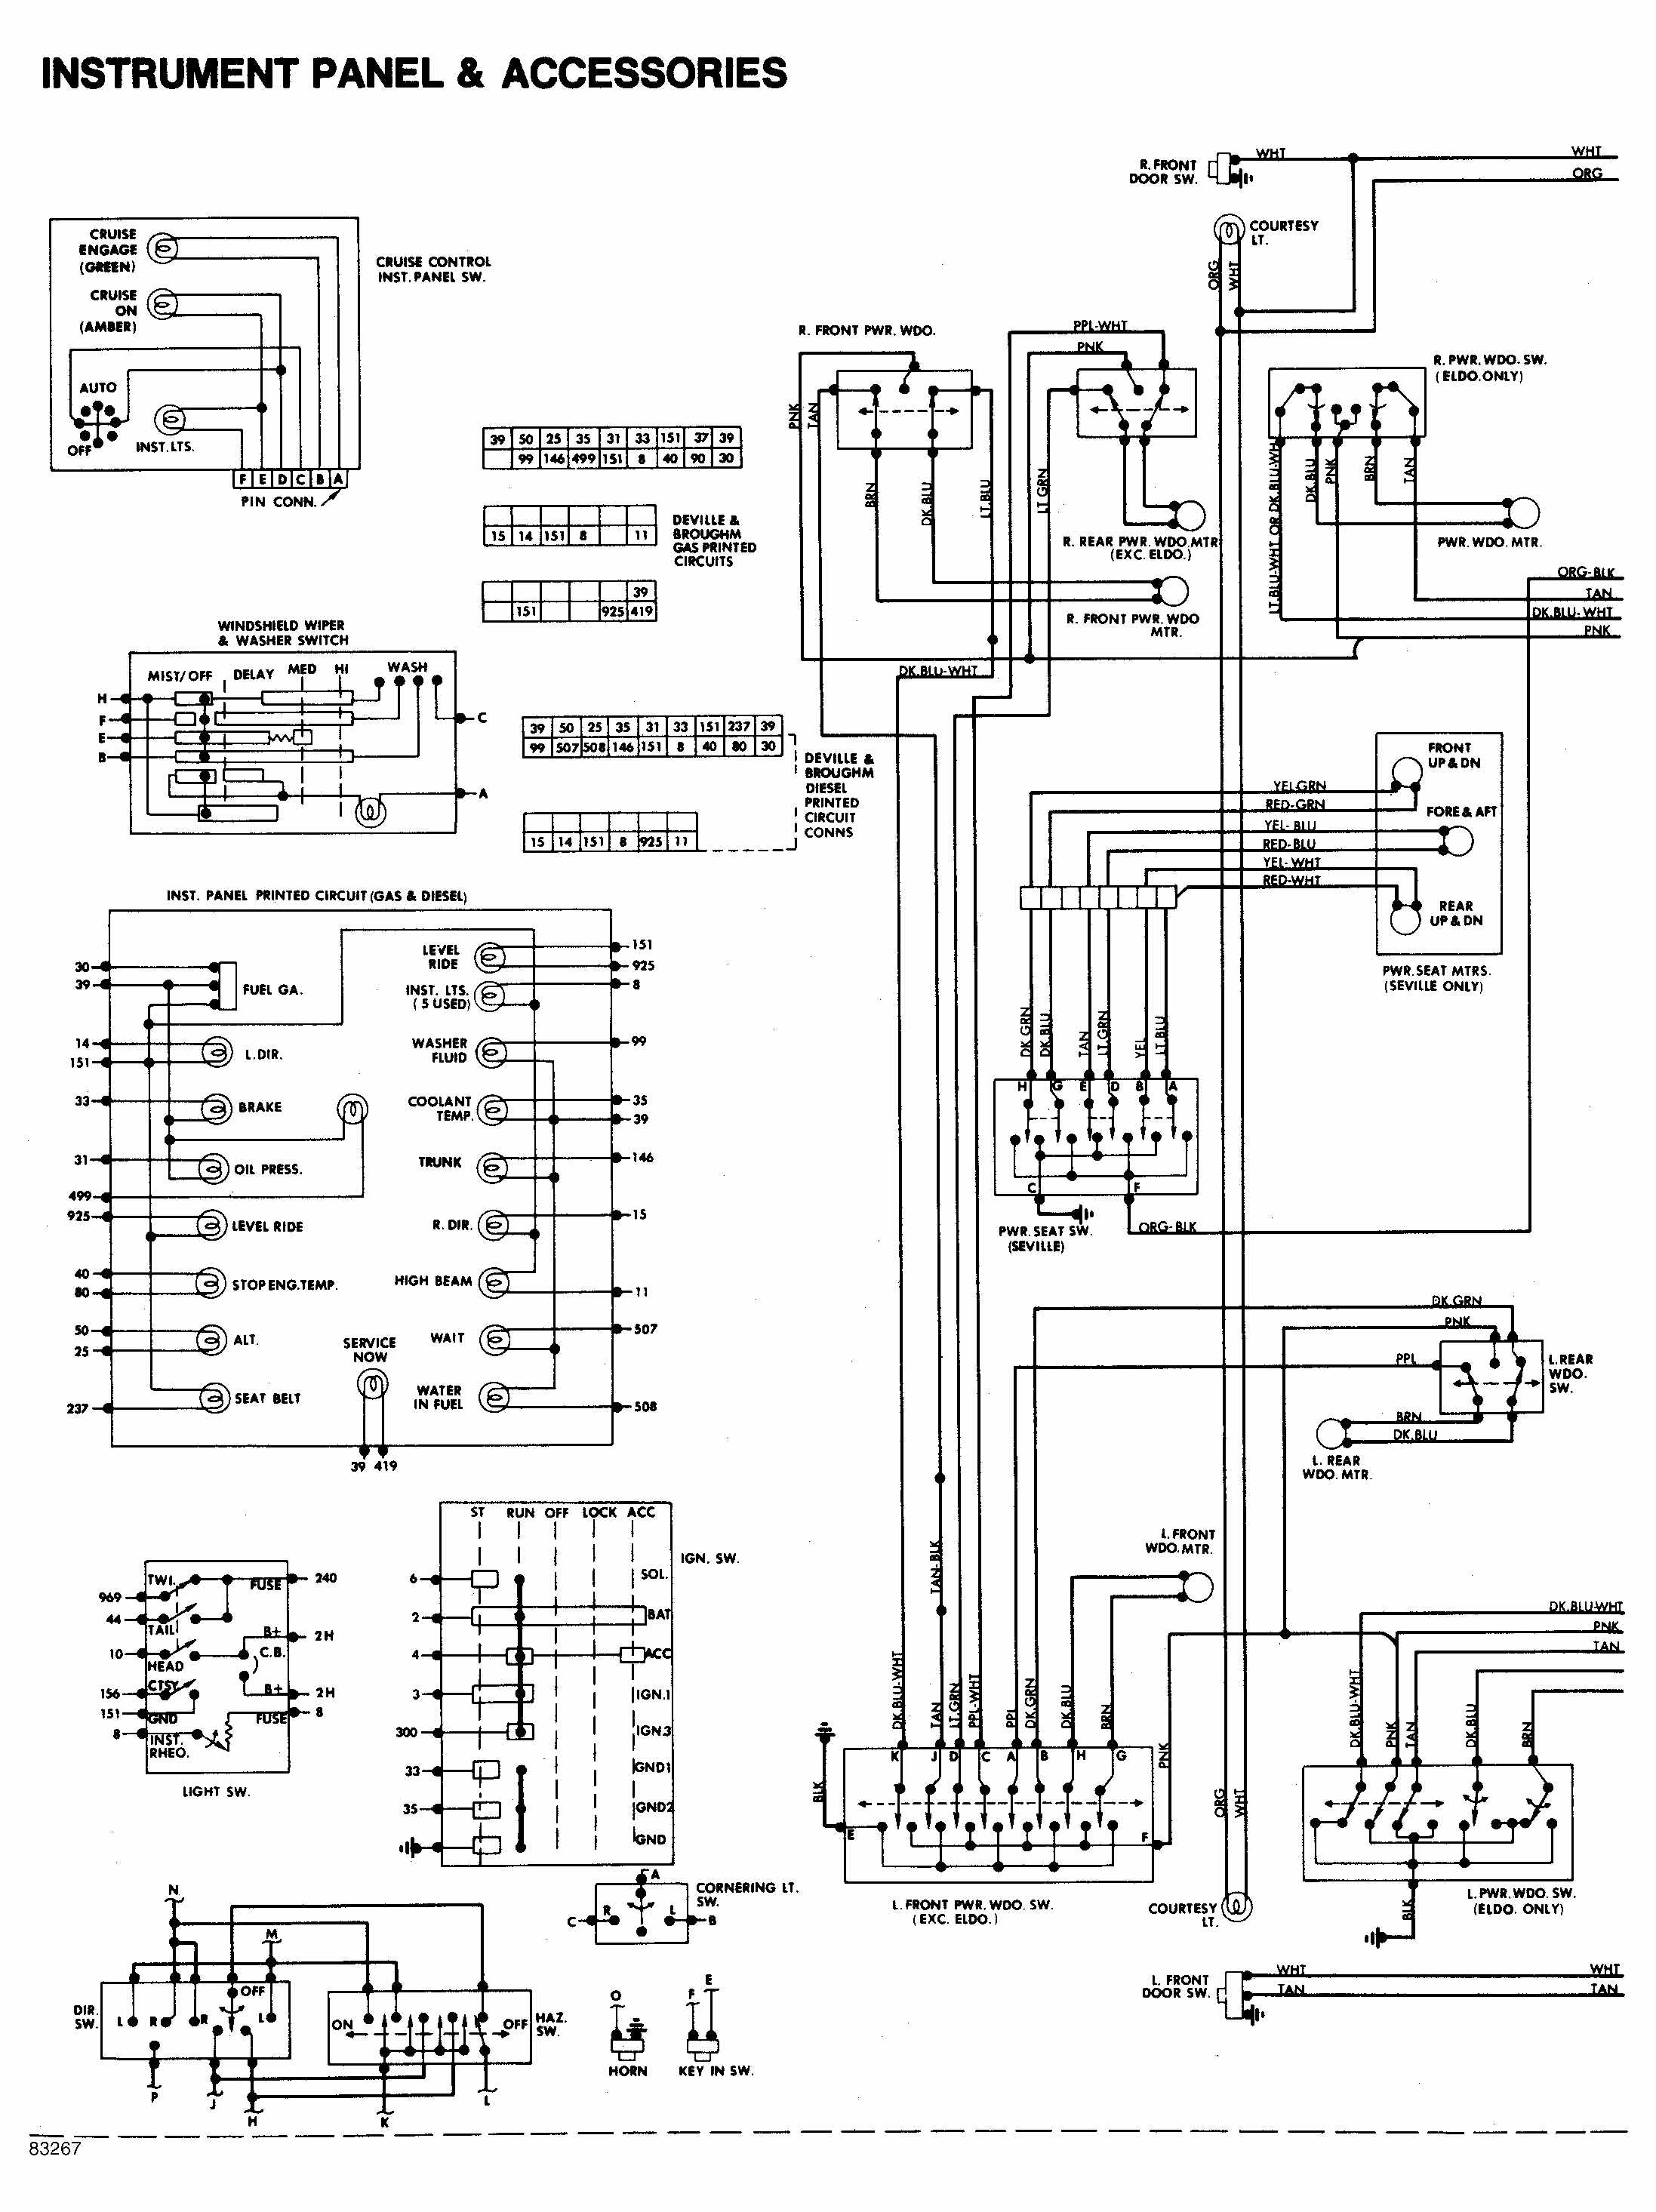 wiring diagram 93 chevy silverado